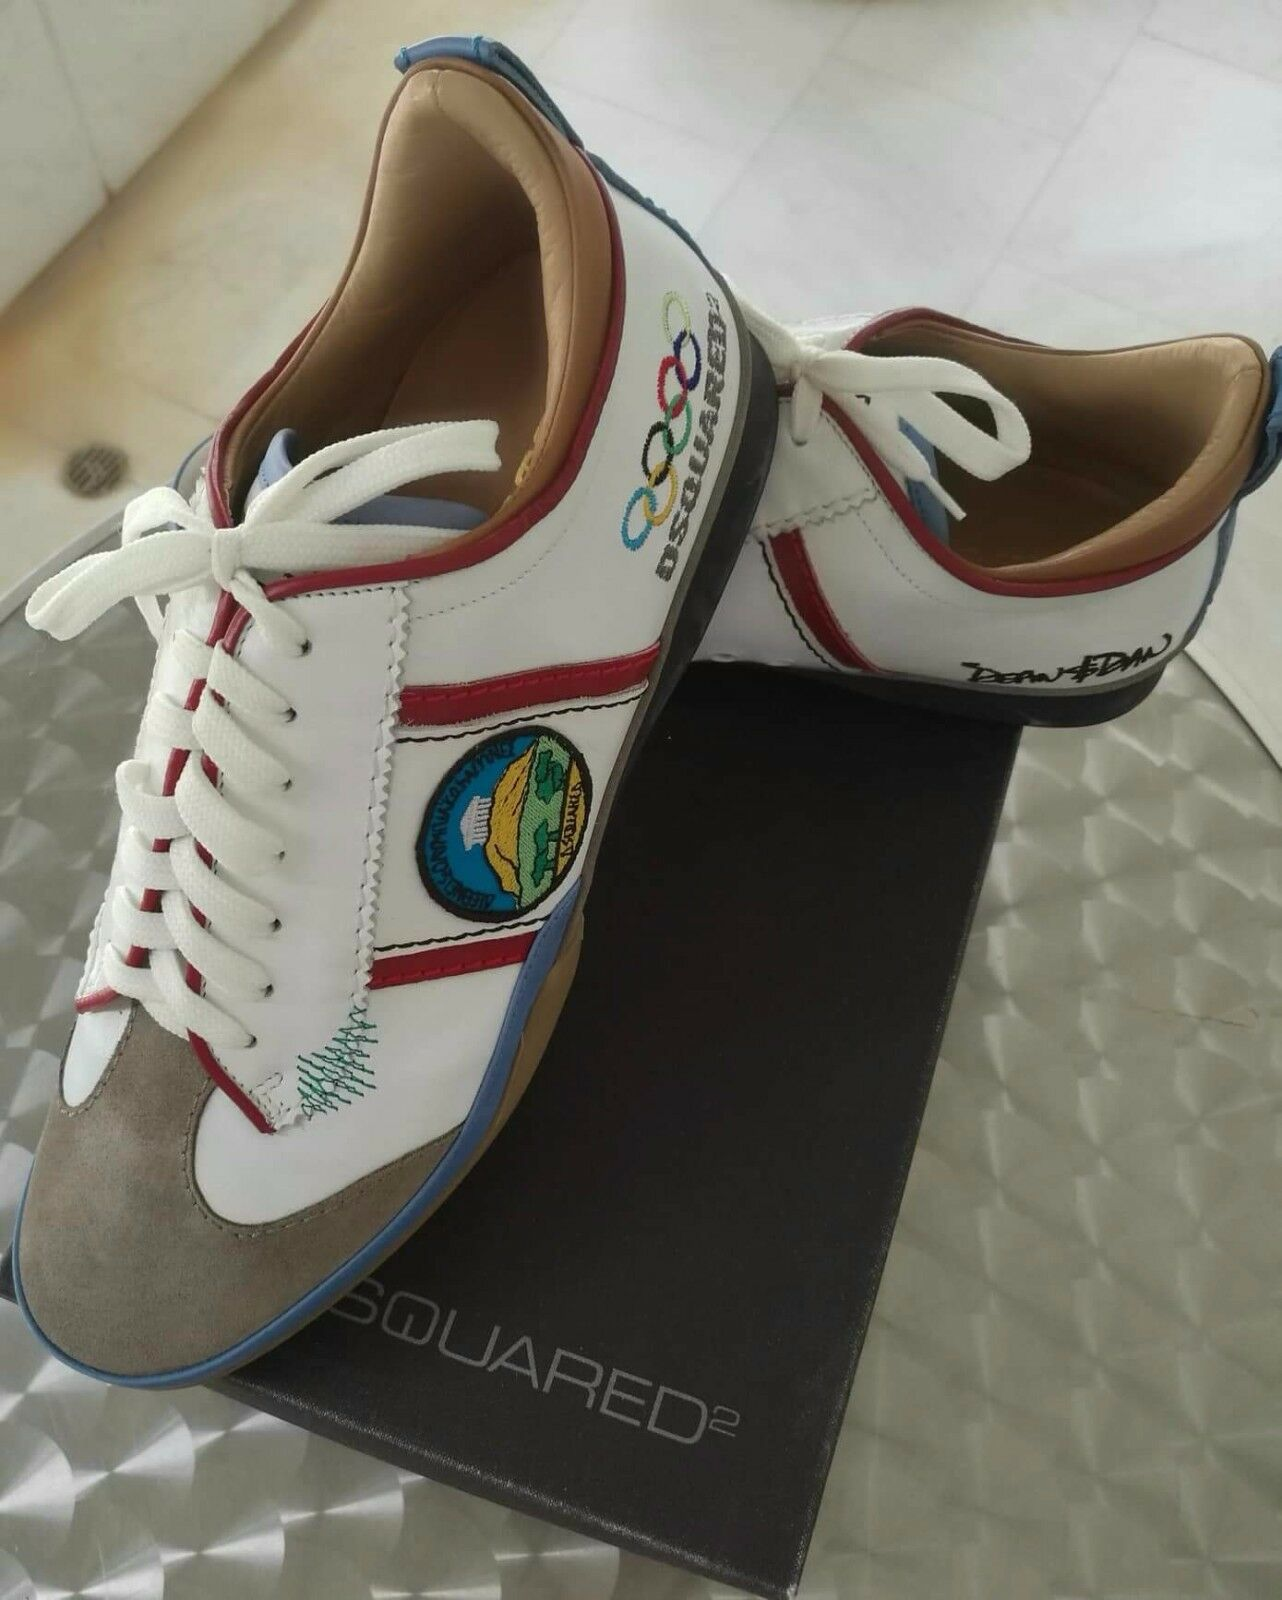 Scarpe casual da uomo  Collectible Authentic Dsquared2 Athens 2004 Olympic Games uomos Shoes, Size 9.5